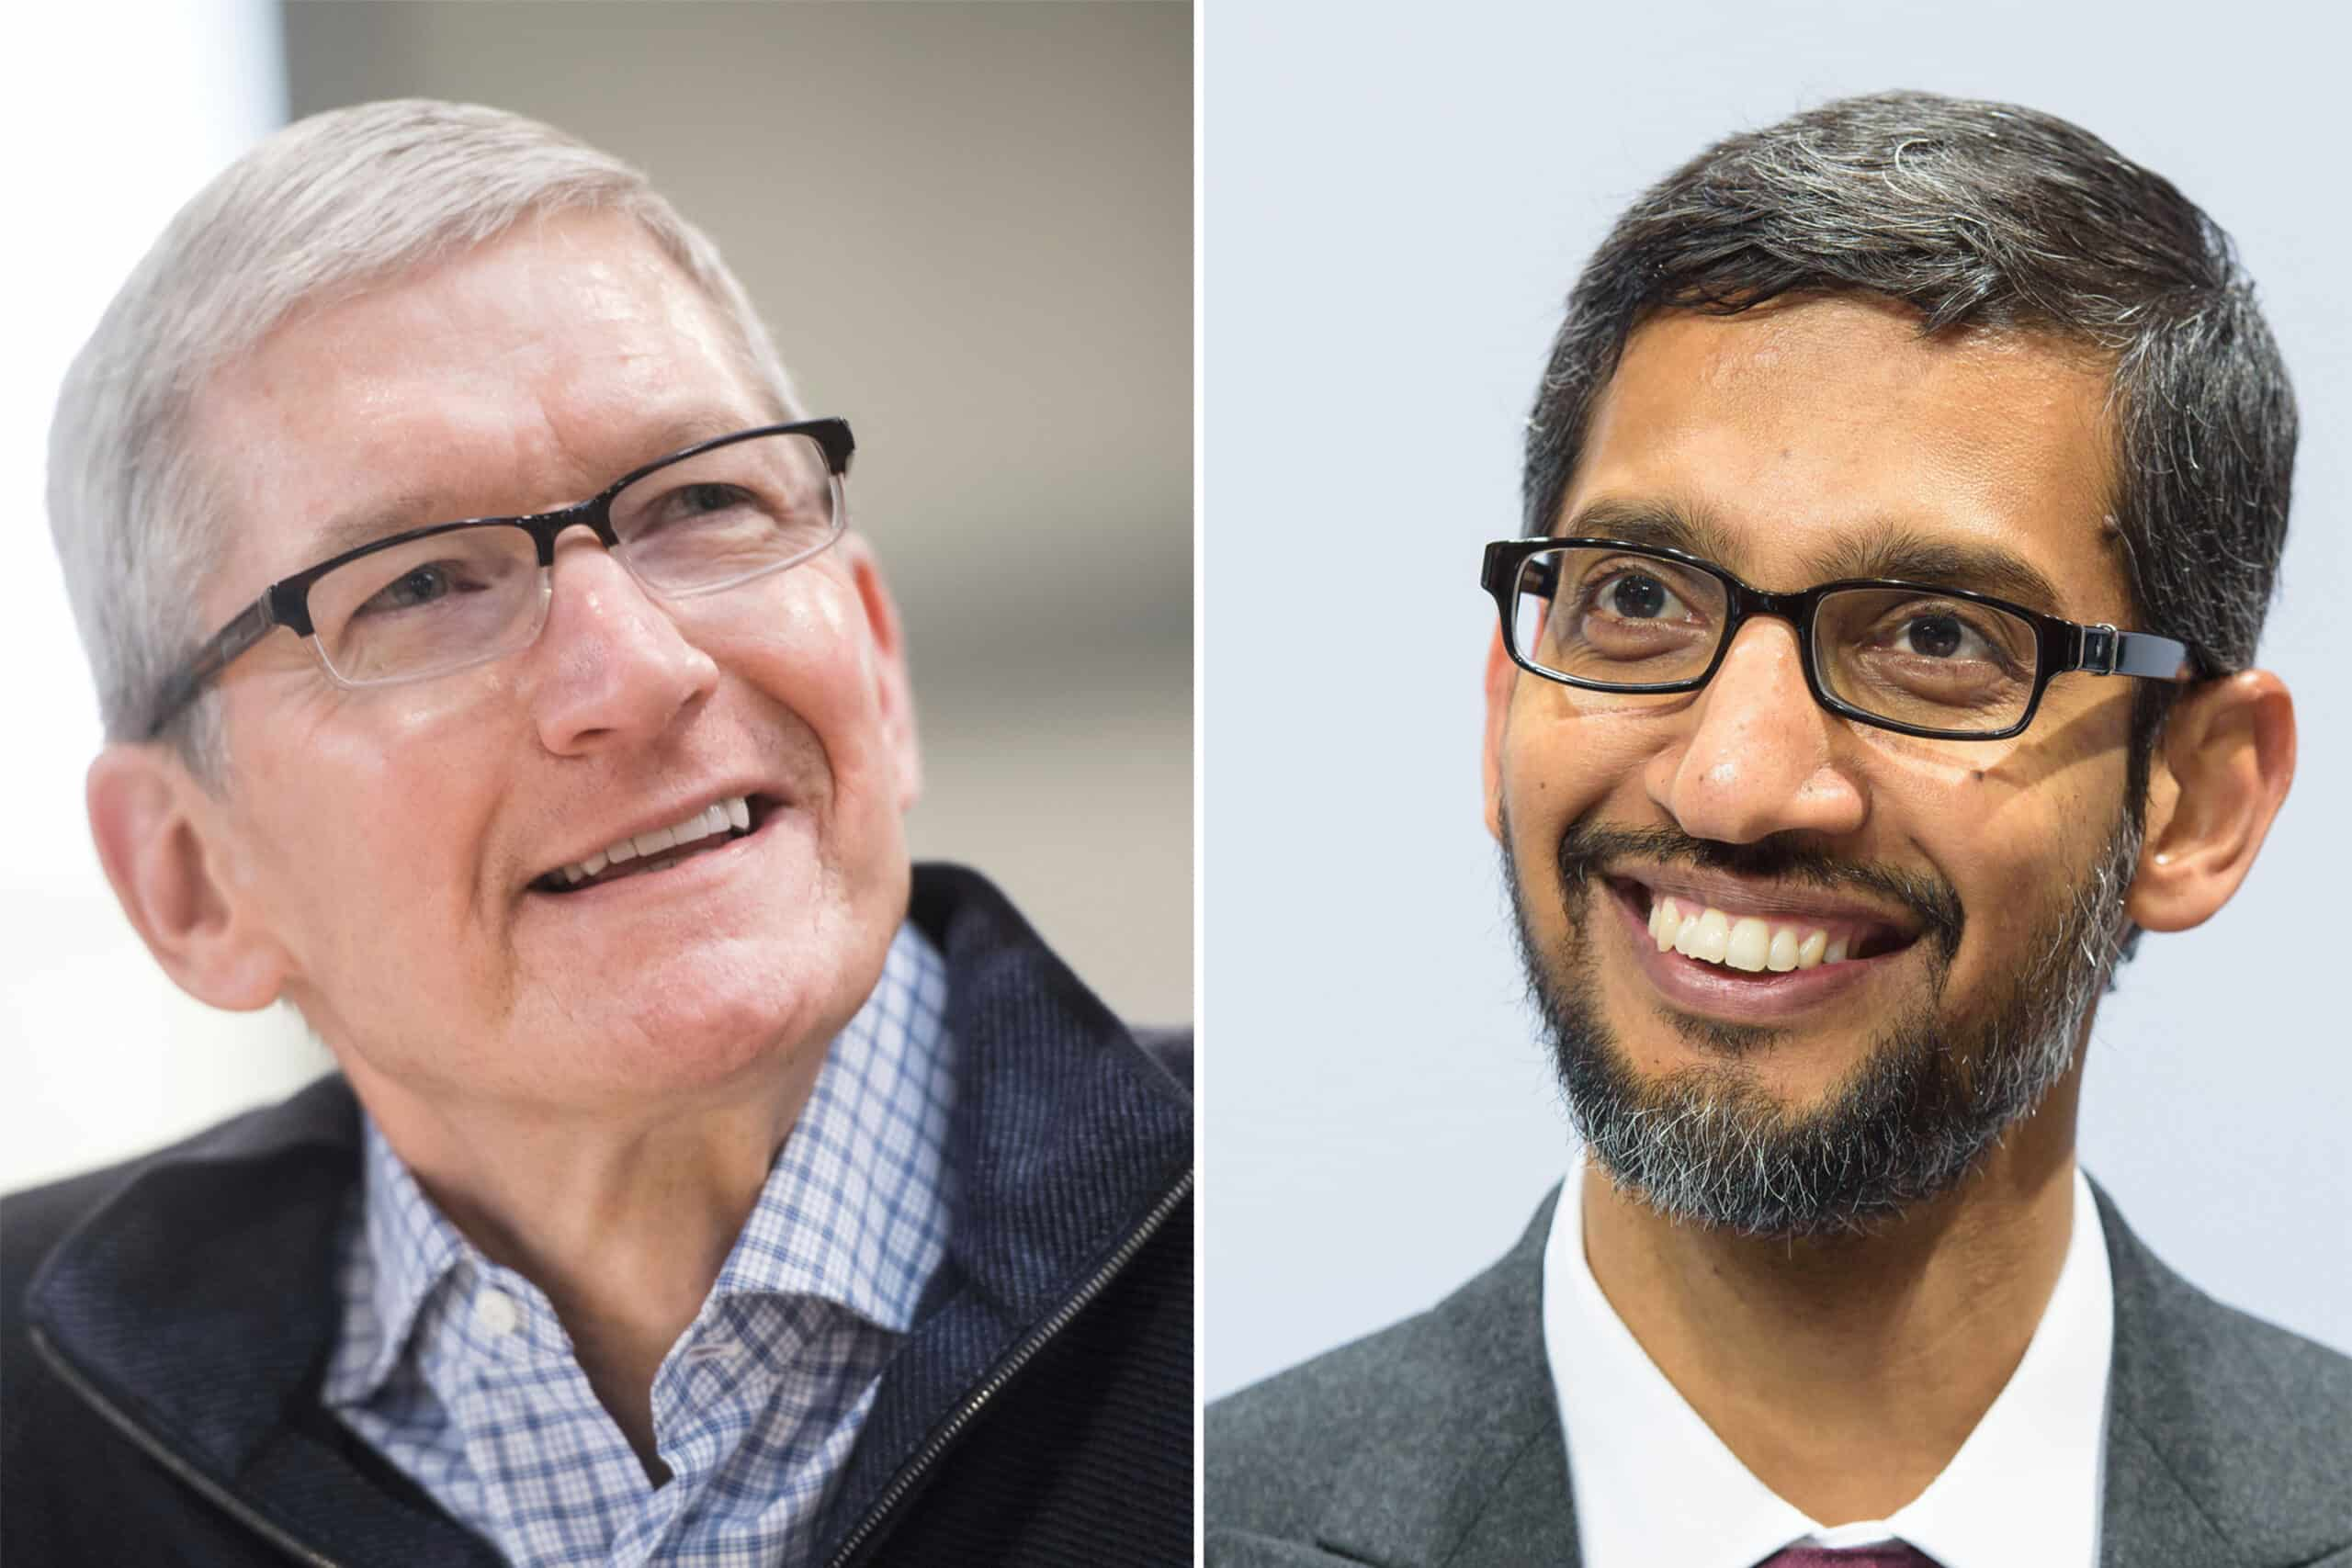 Google CEO Sundar Pichai open to working with Apple on future projects